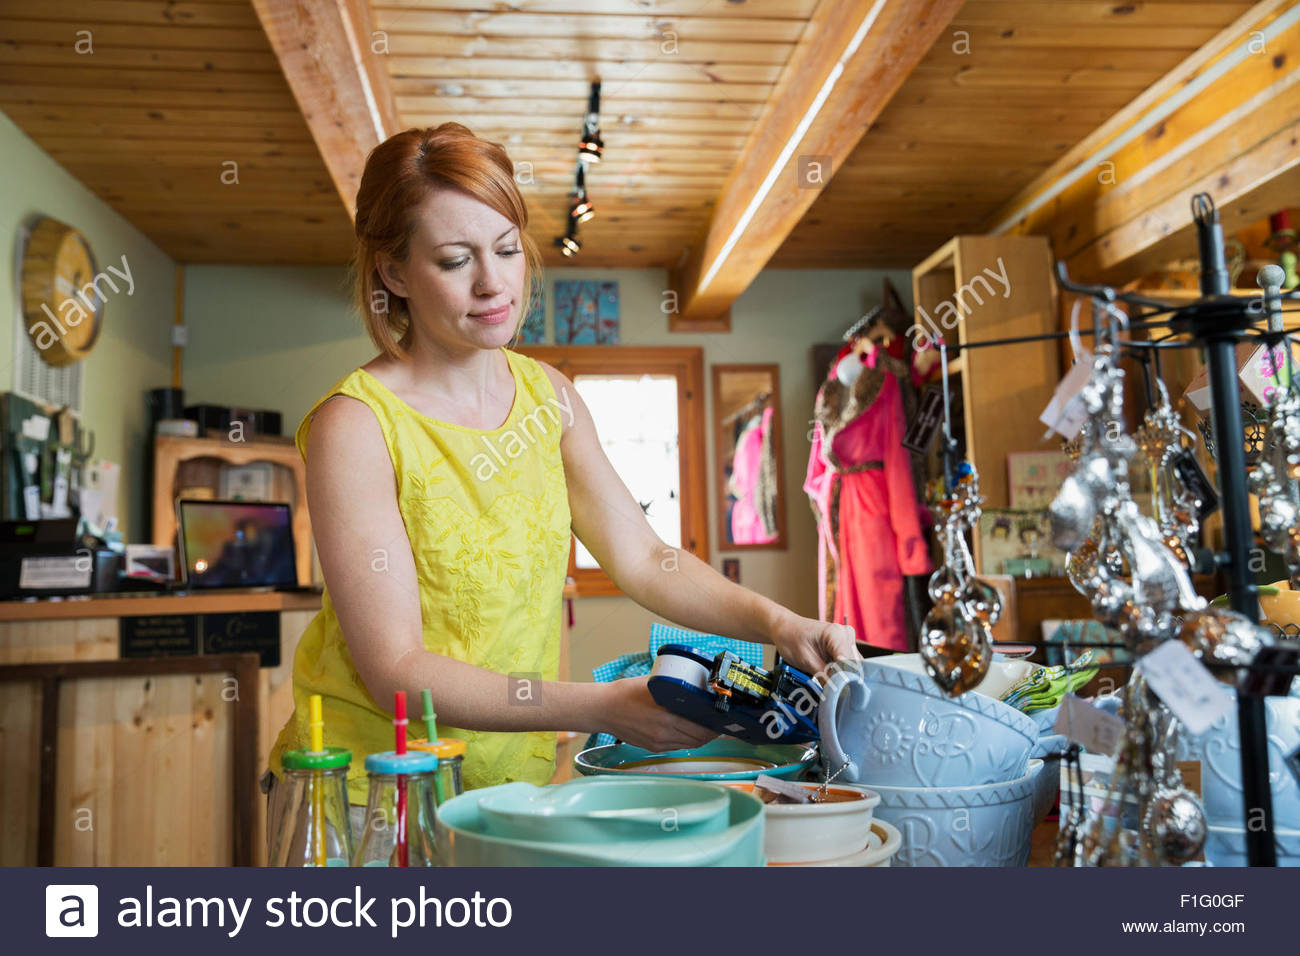 Shop owner tagging merchandise with price tags display - Stock Image